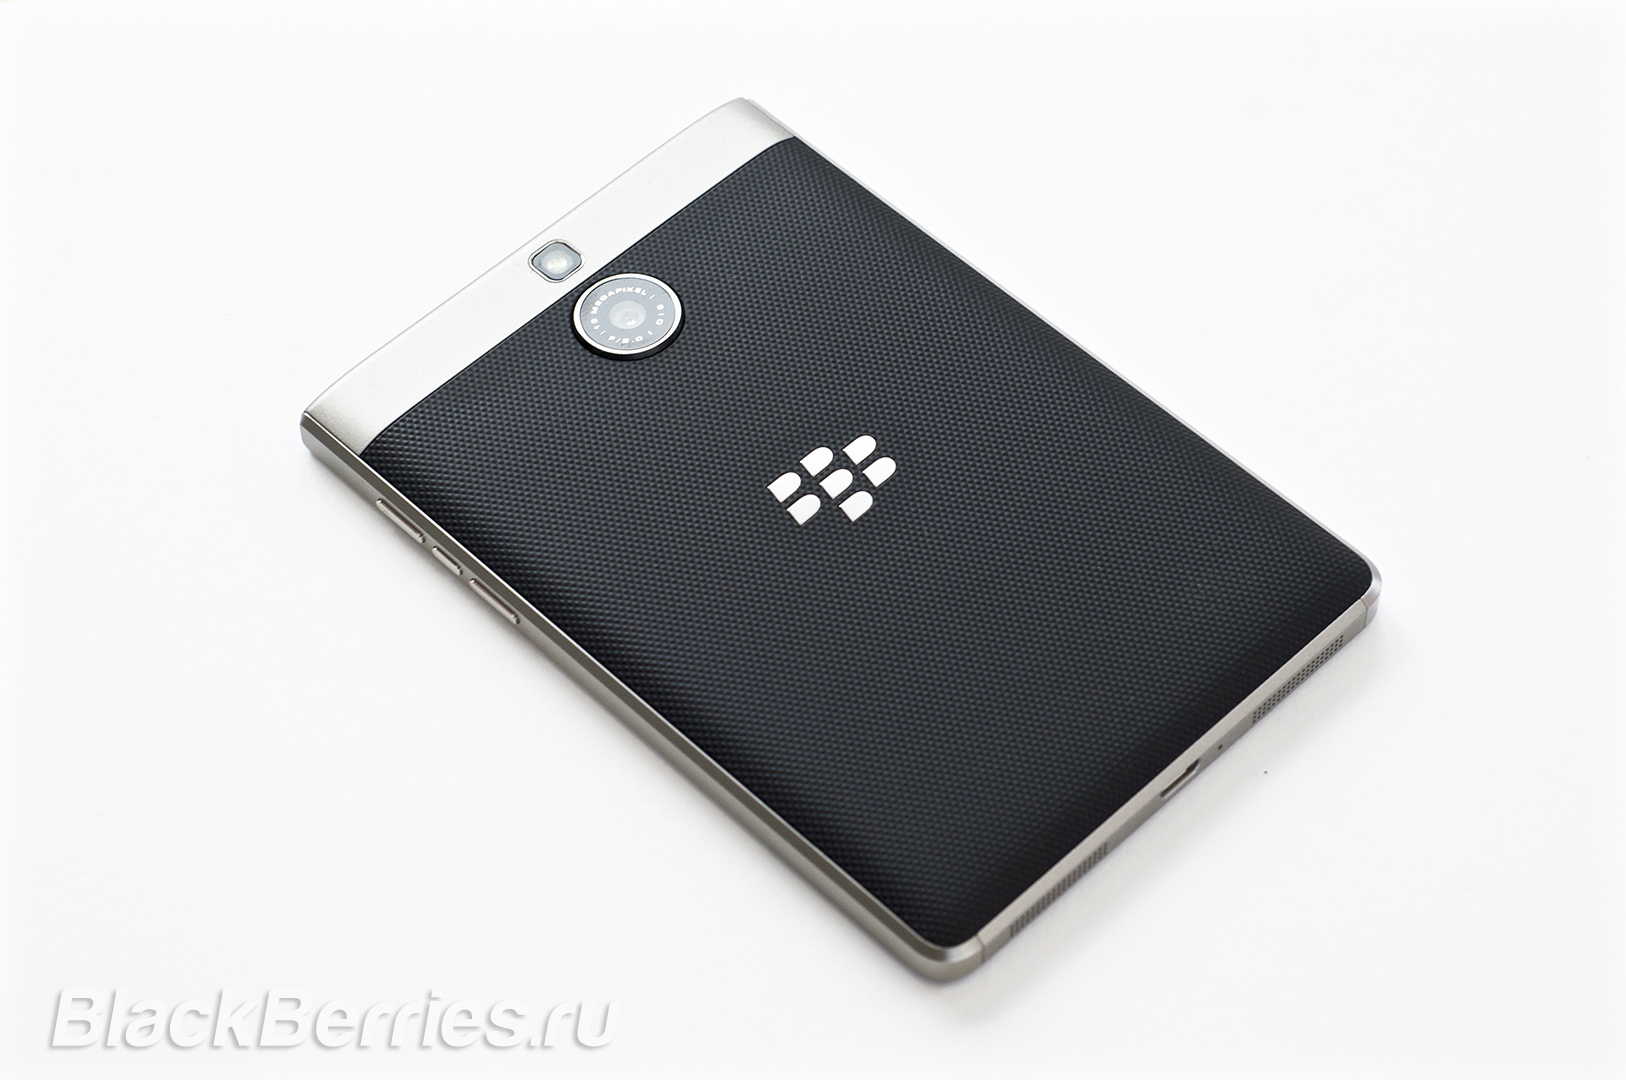 BlackBerry-Passport-Silver-Edition-Review-41